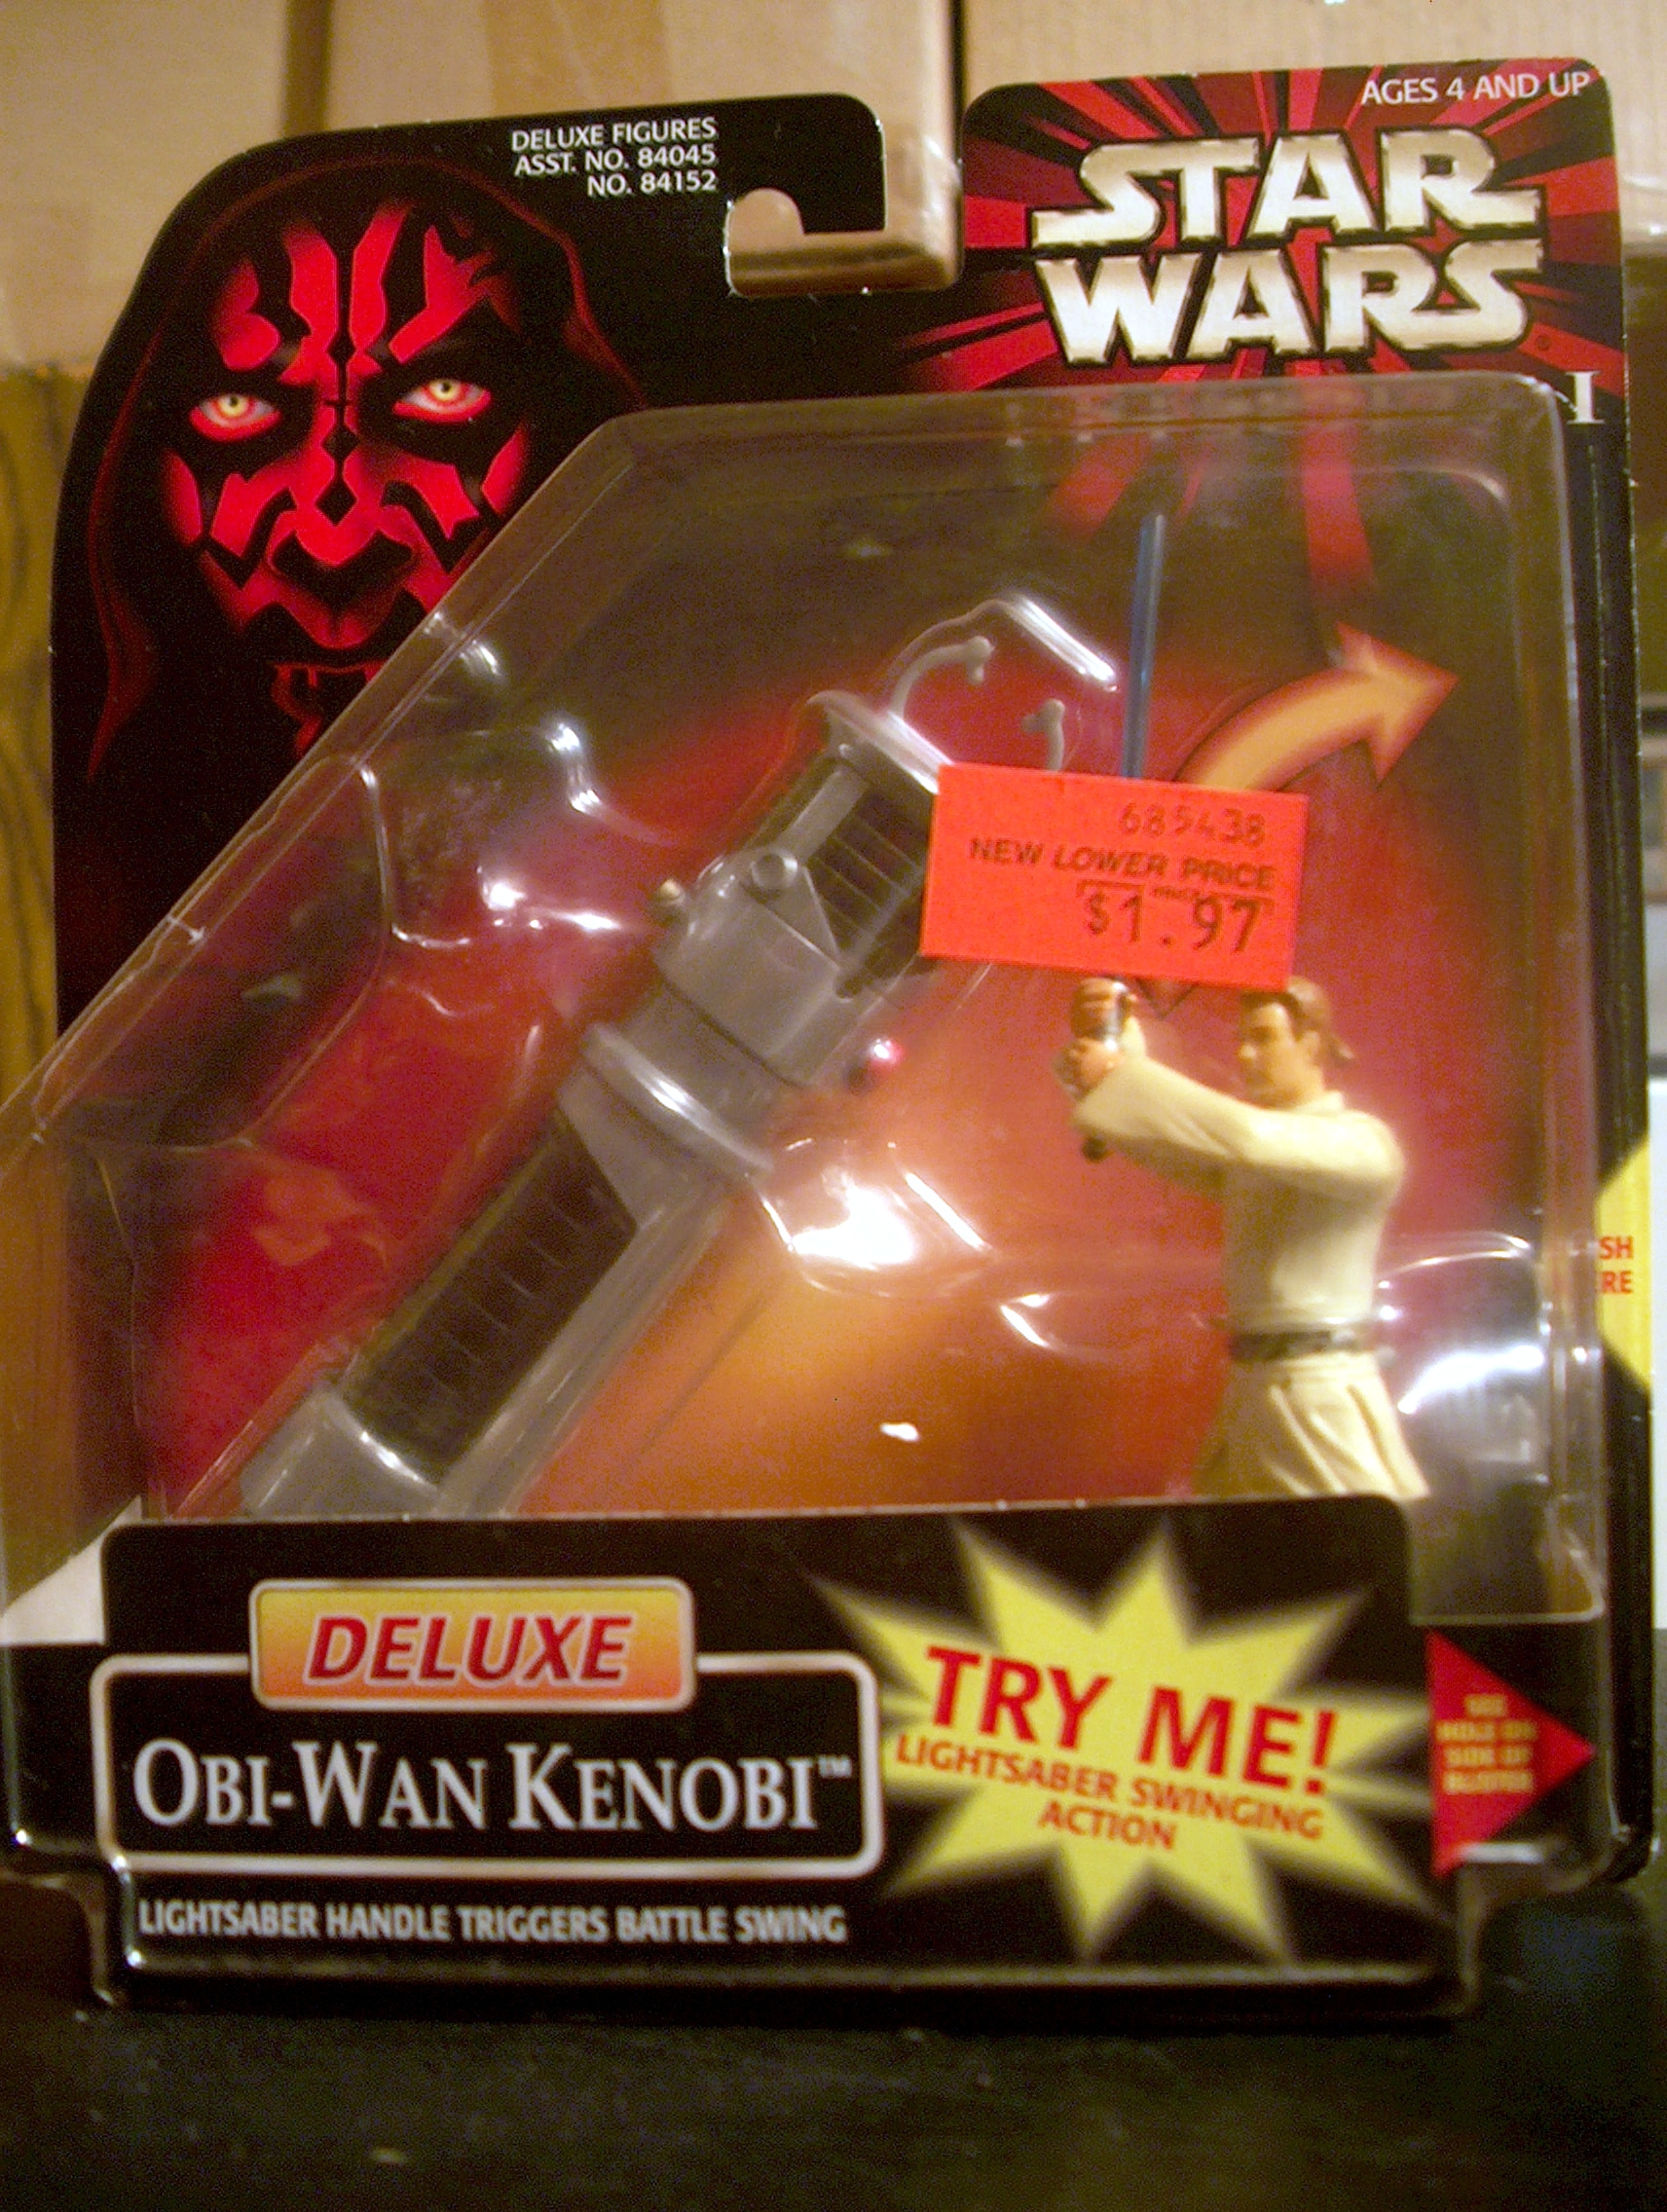 Deluxe Obi-Wan Kenobi Lightsaber Handle Triggers Battle Swing